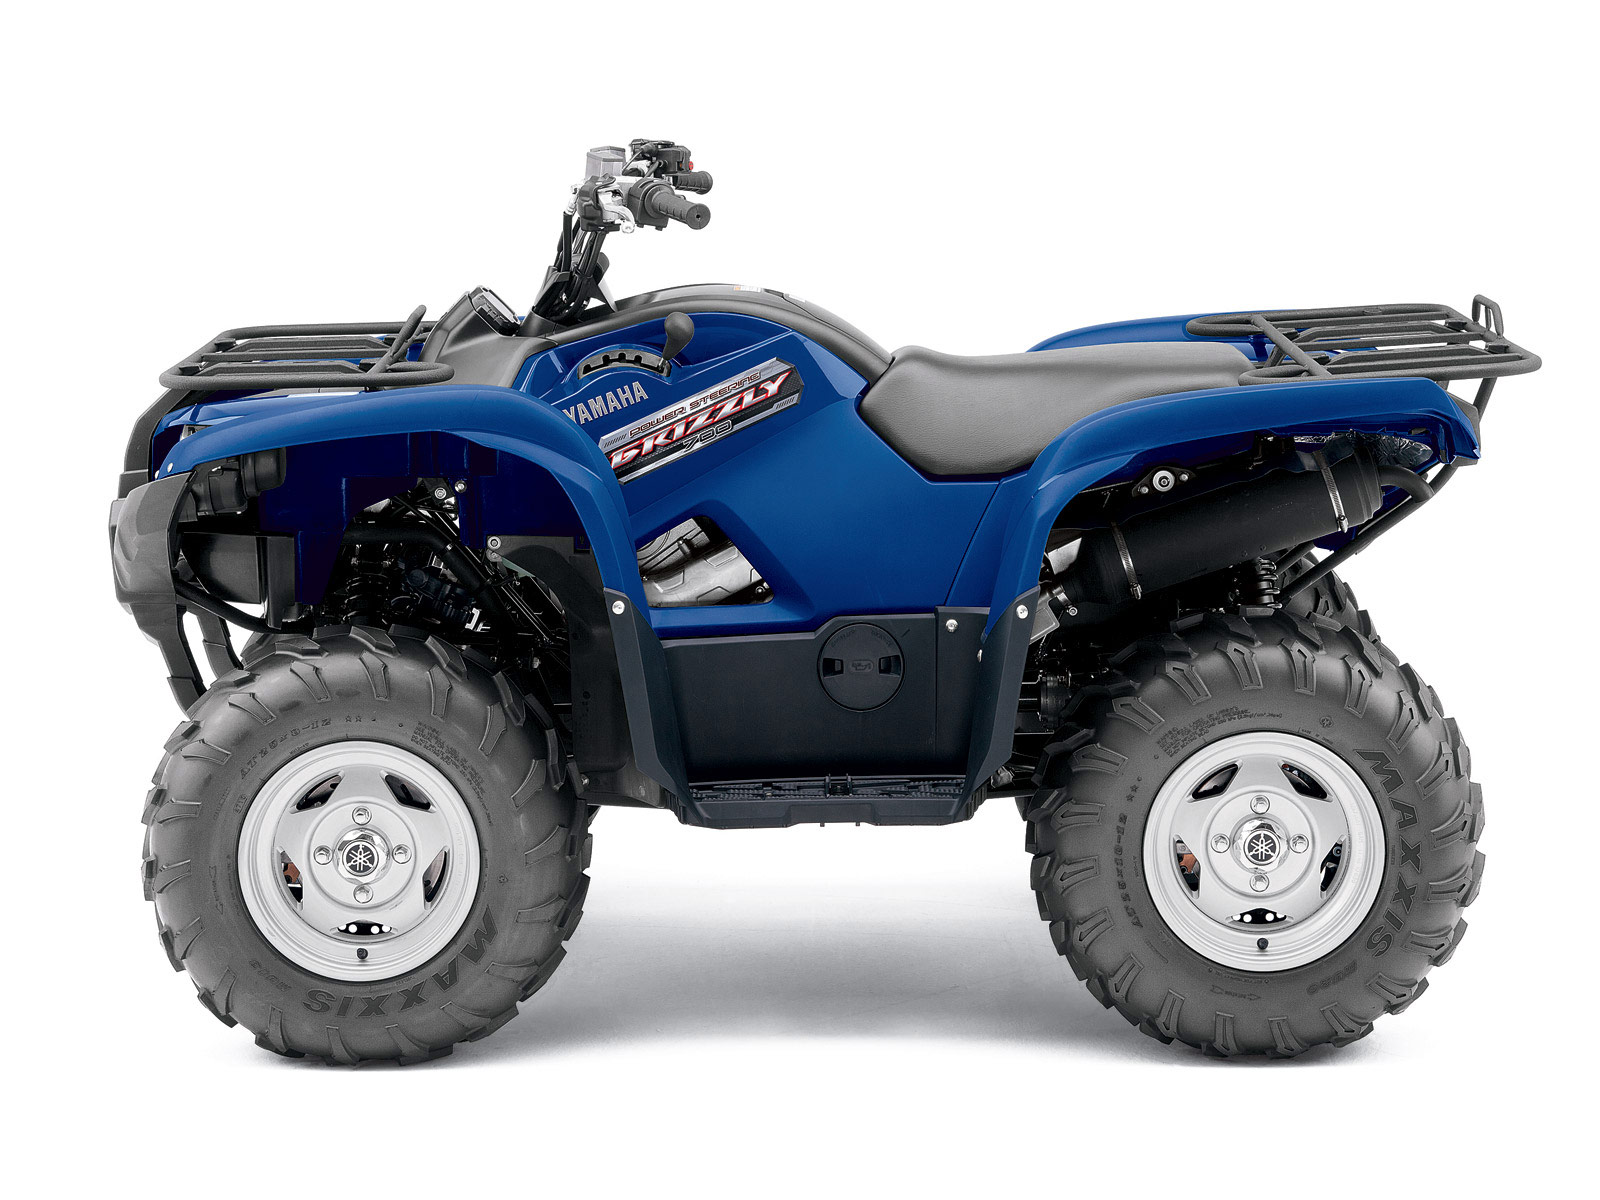 2012 yamaha grizzly 700 fi auto 4x4 eps atv specifications. Black Bedroom Furniture Sets. Home Design Ideas